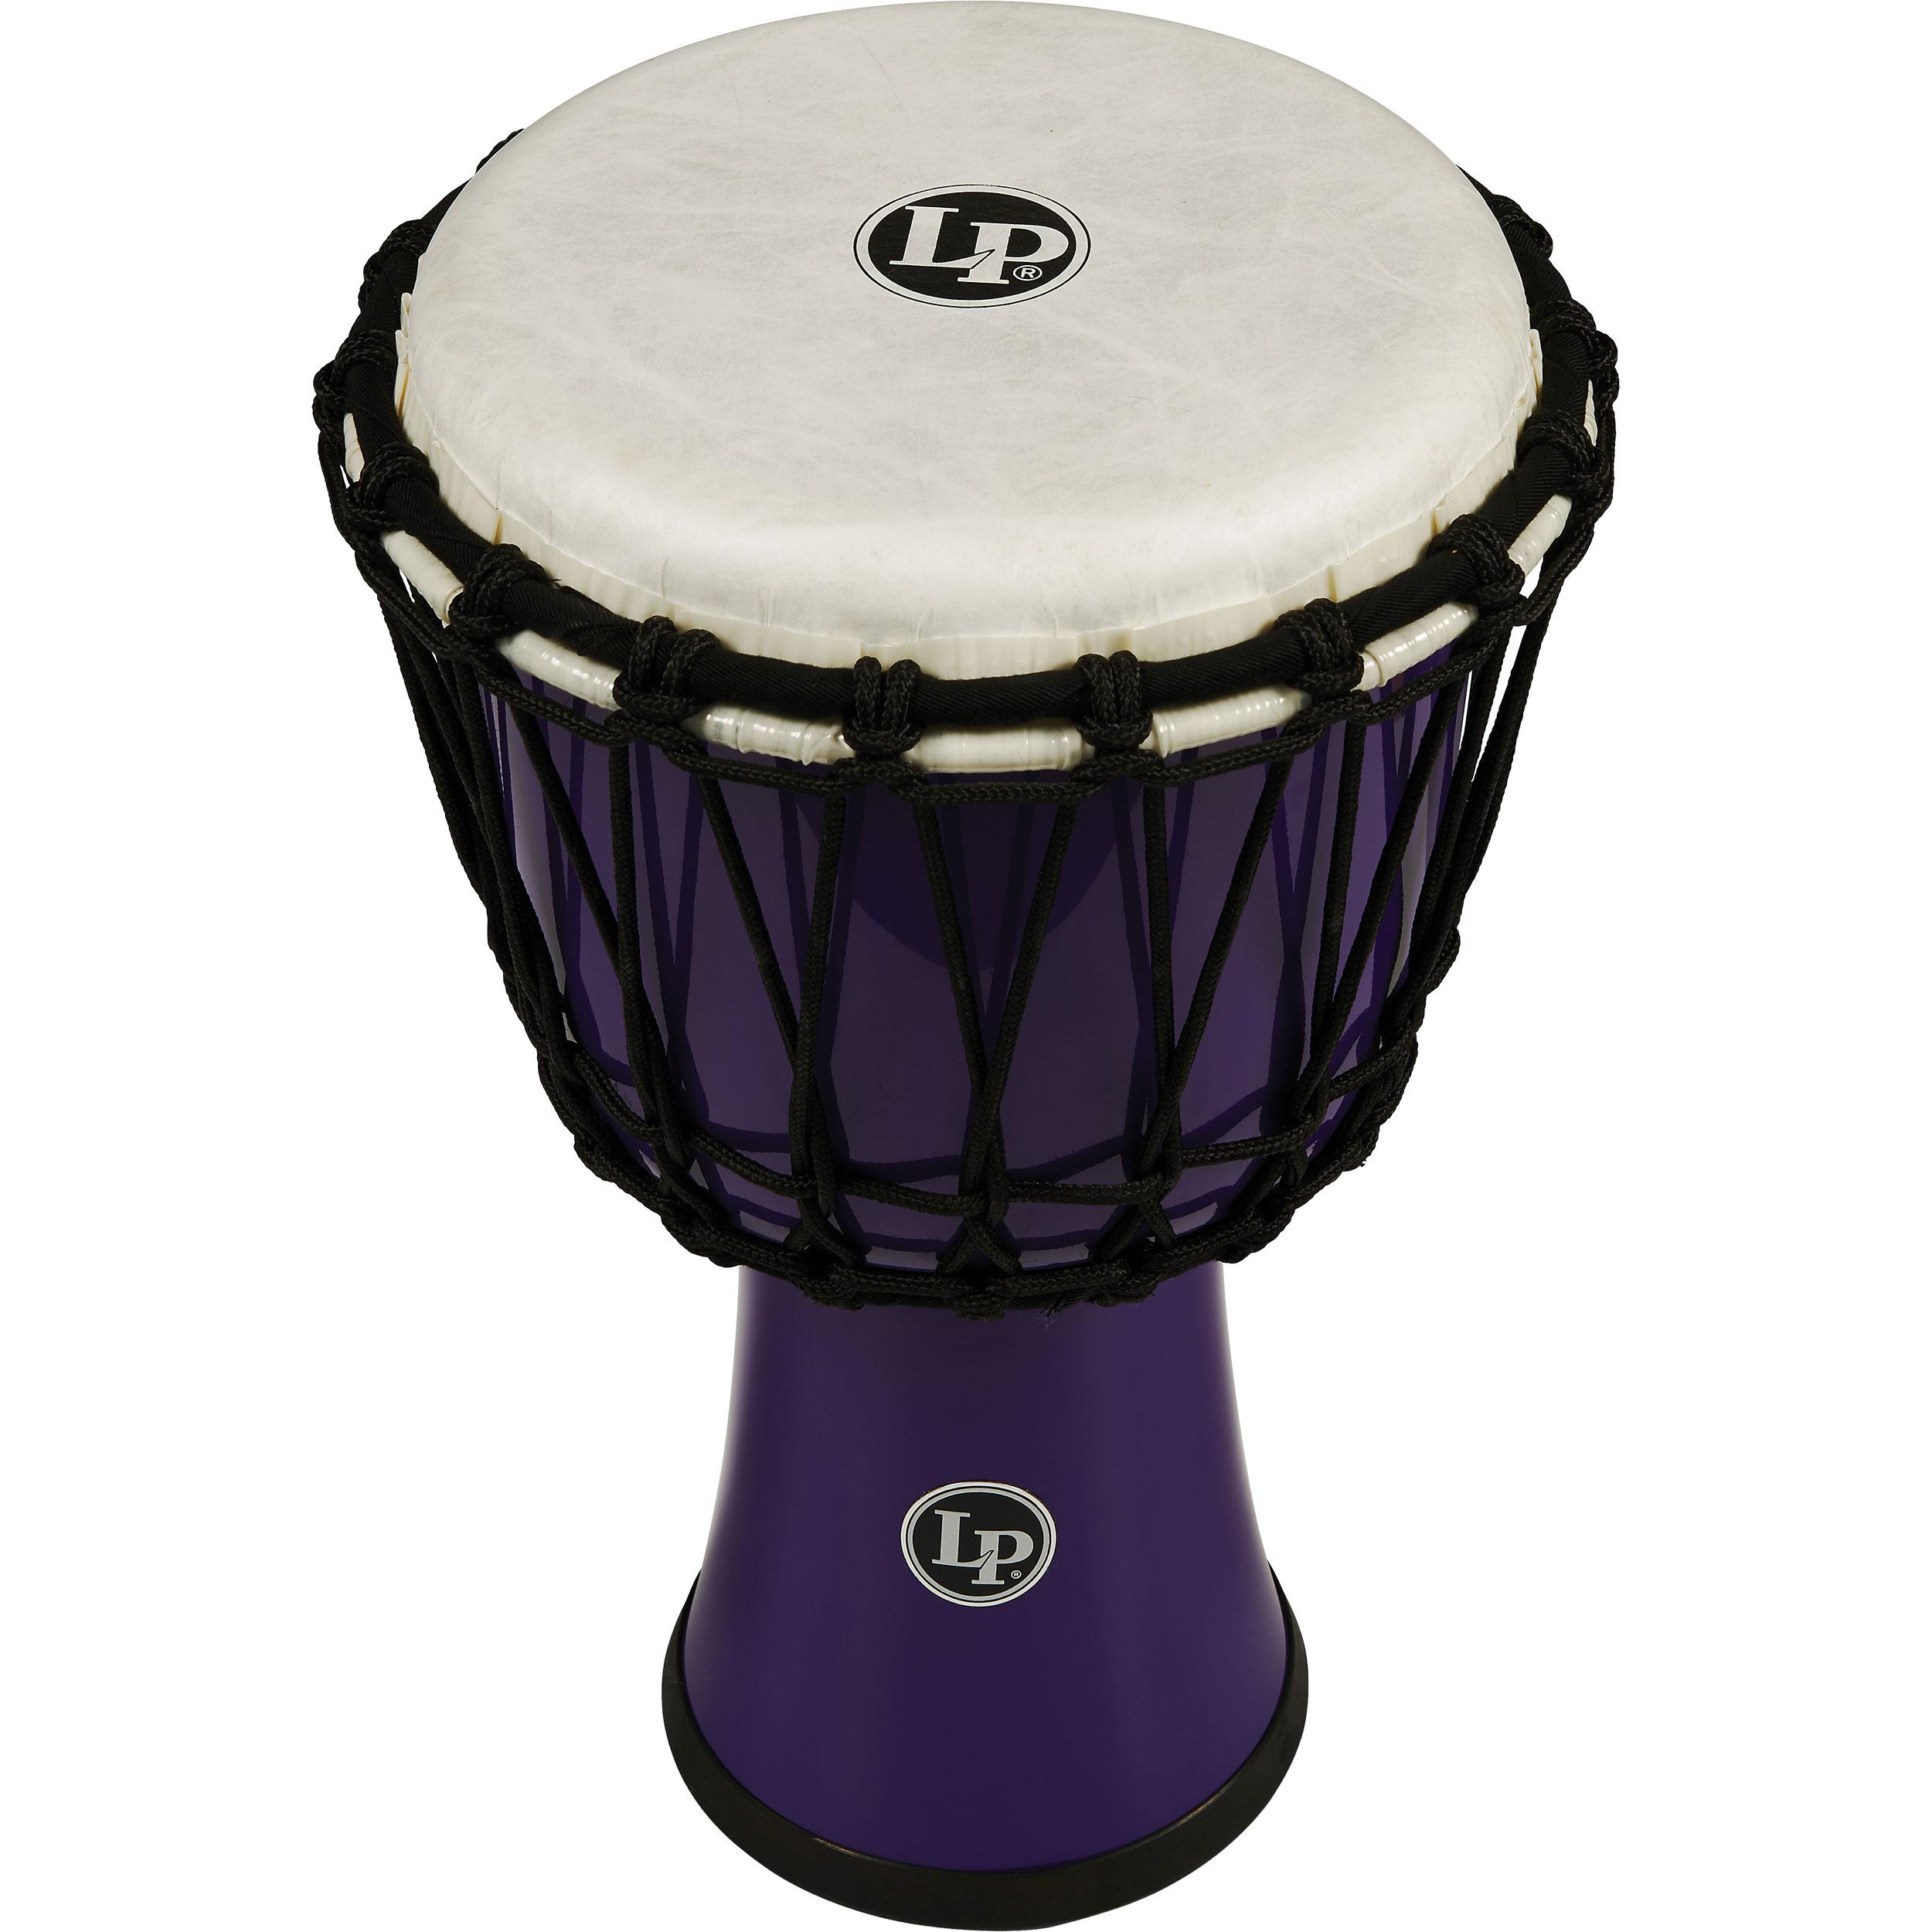 "LP 7"" Rope Tuned Circle Djembe in Purple"